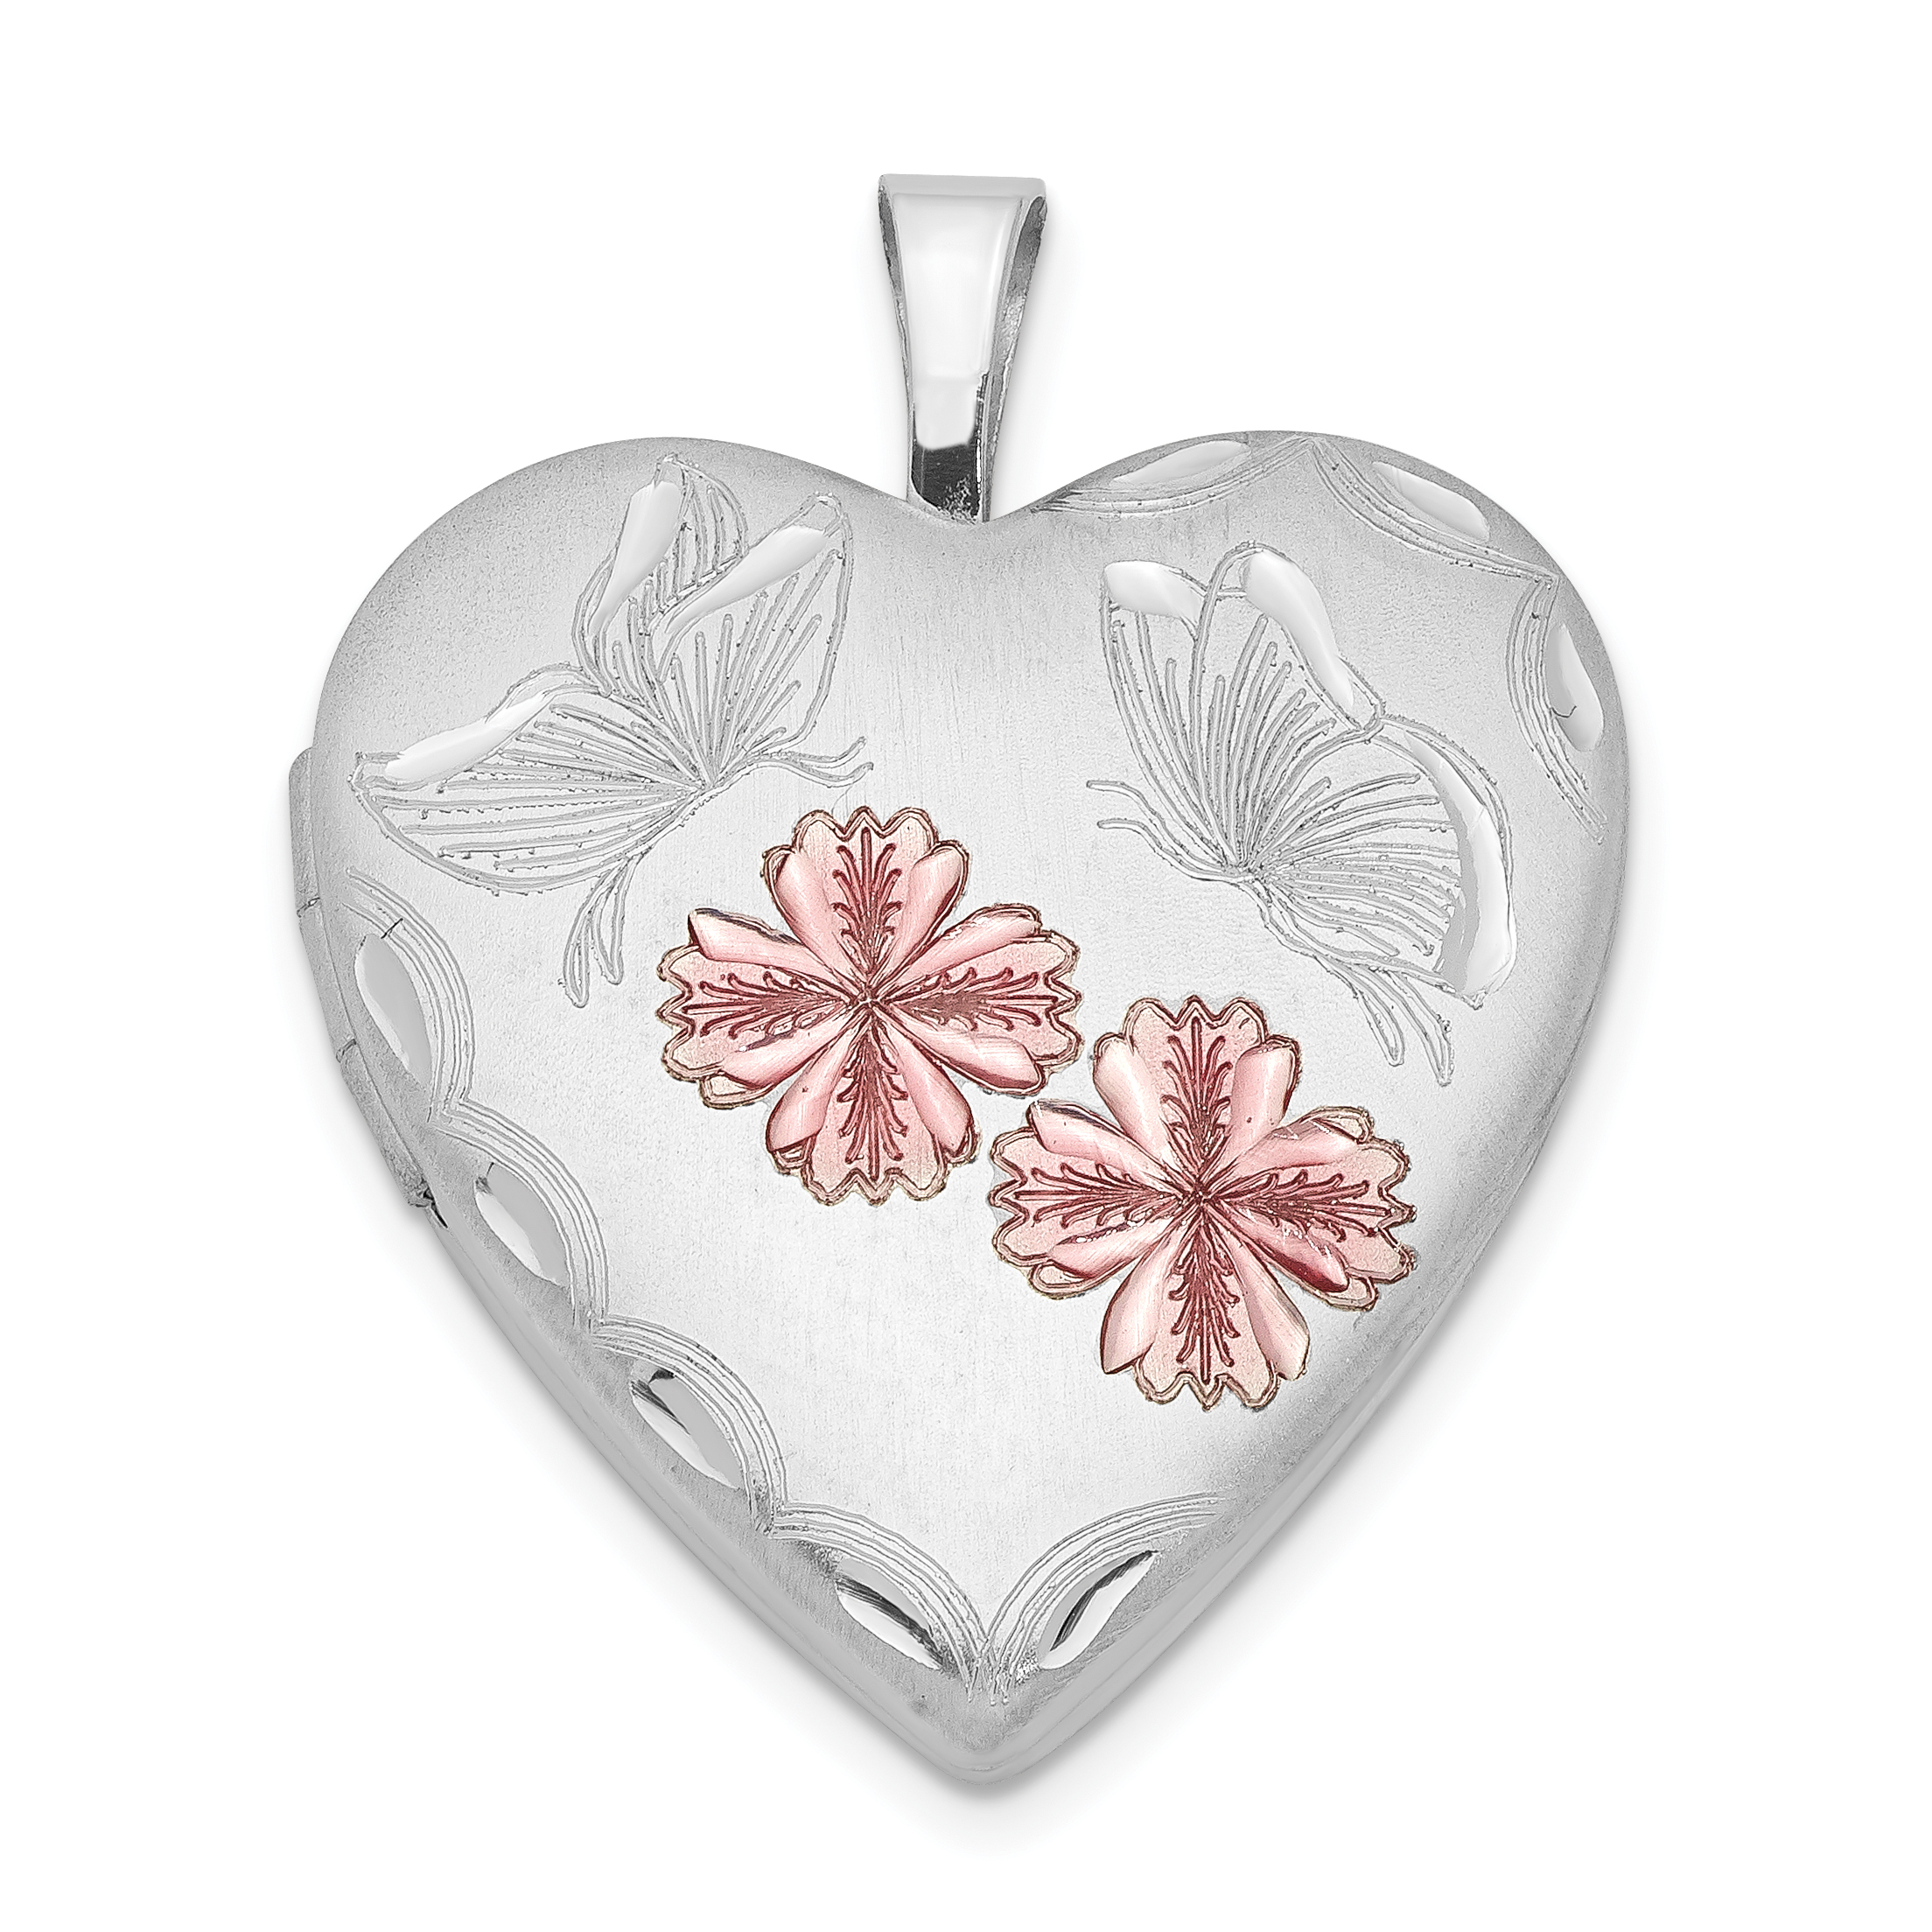 lockets flowers rhodium silver width length locket butterfly sterling grams plated heart weight enameled p